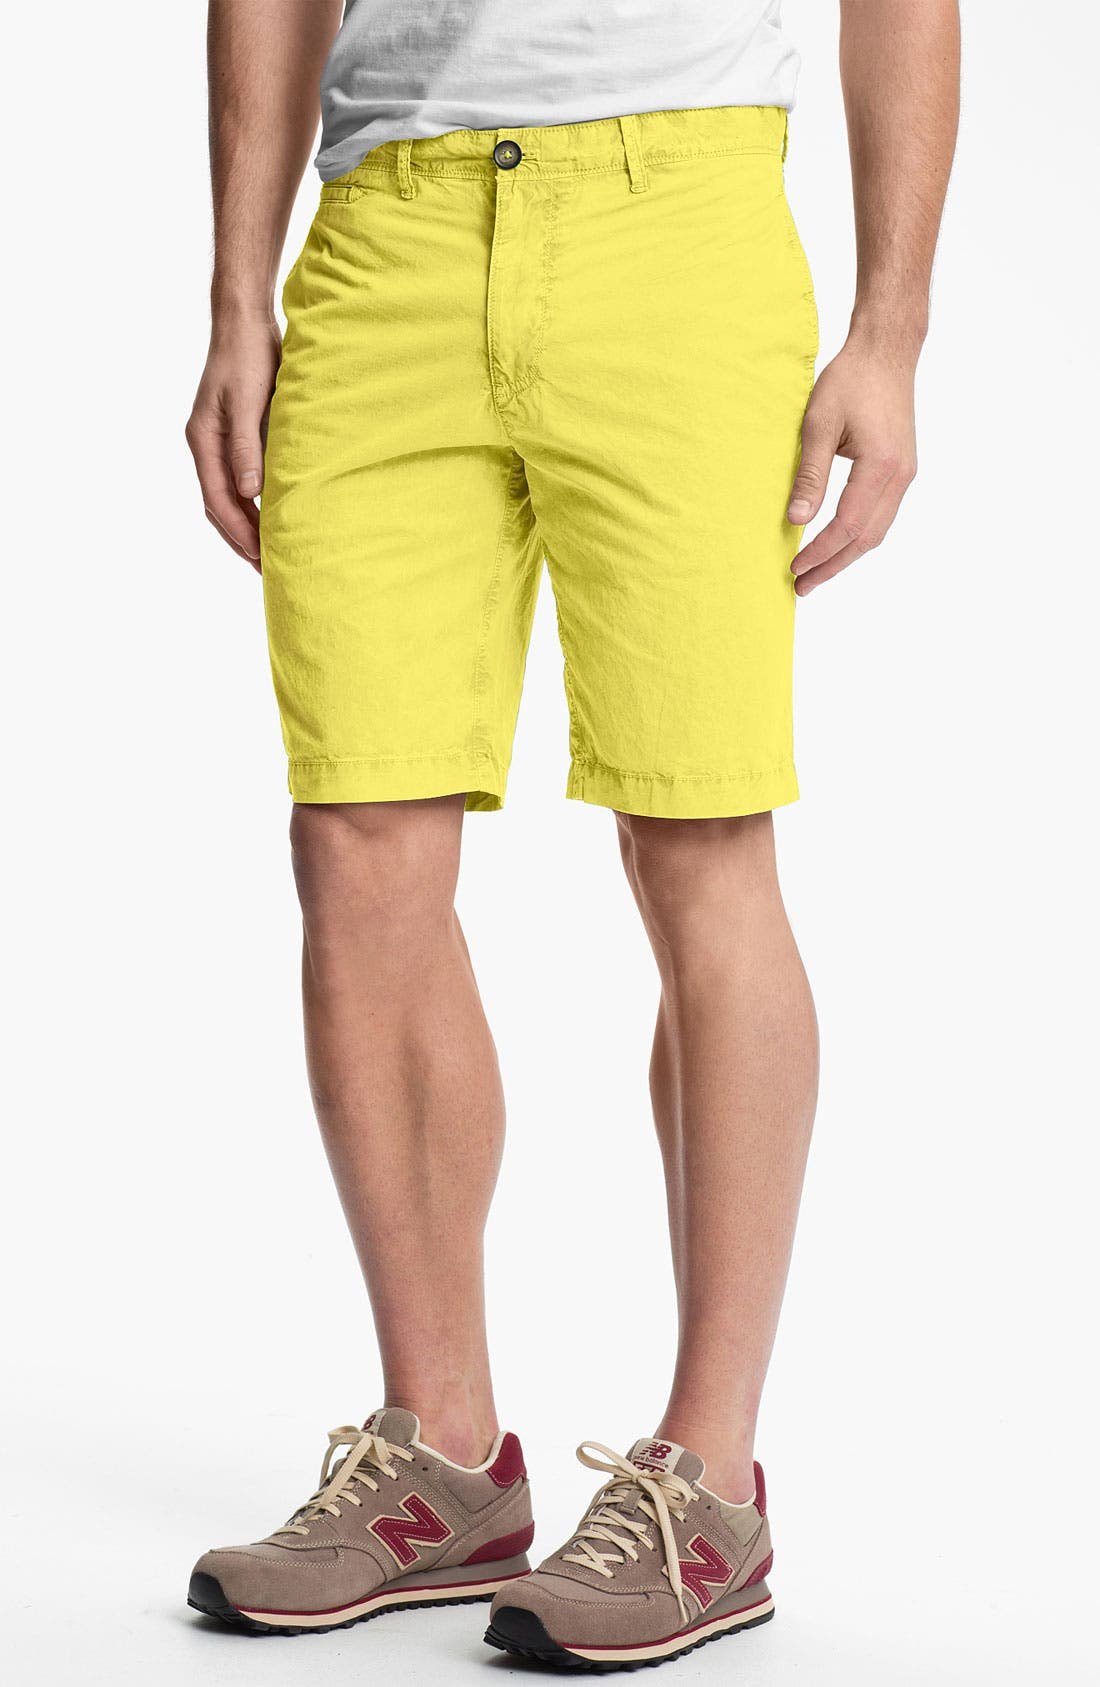 Main Image - Original Penguin Garment Dyed Shorts